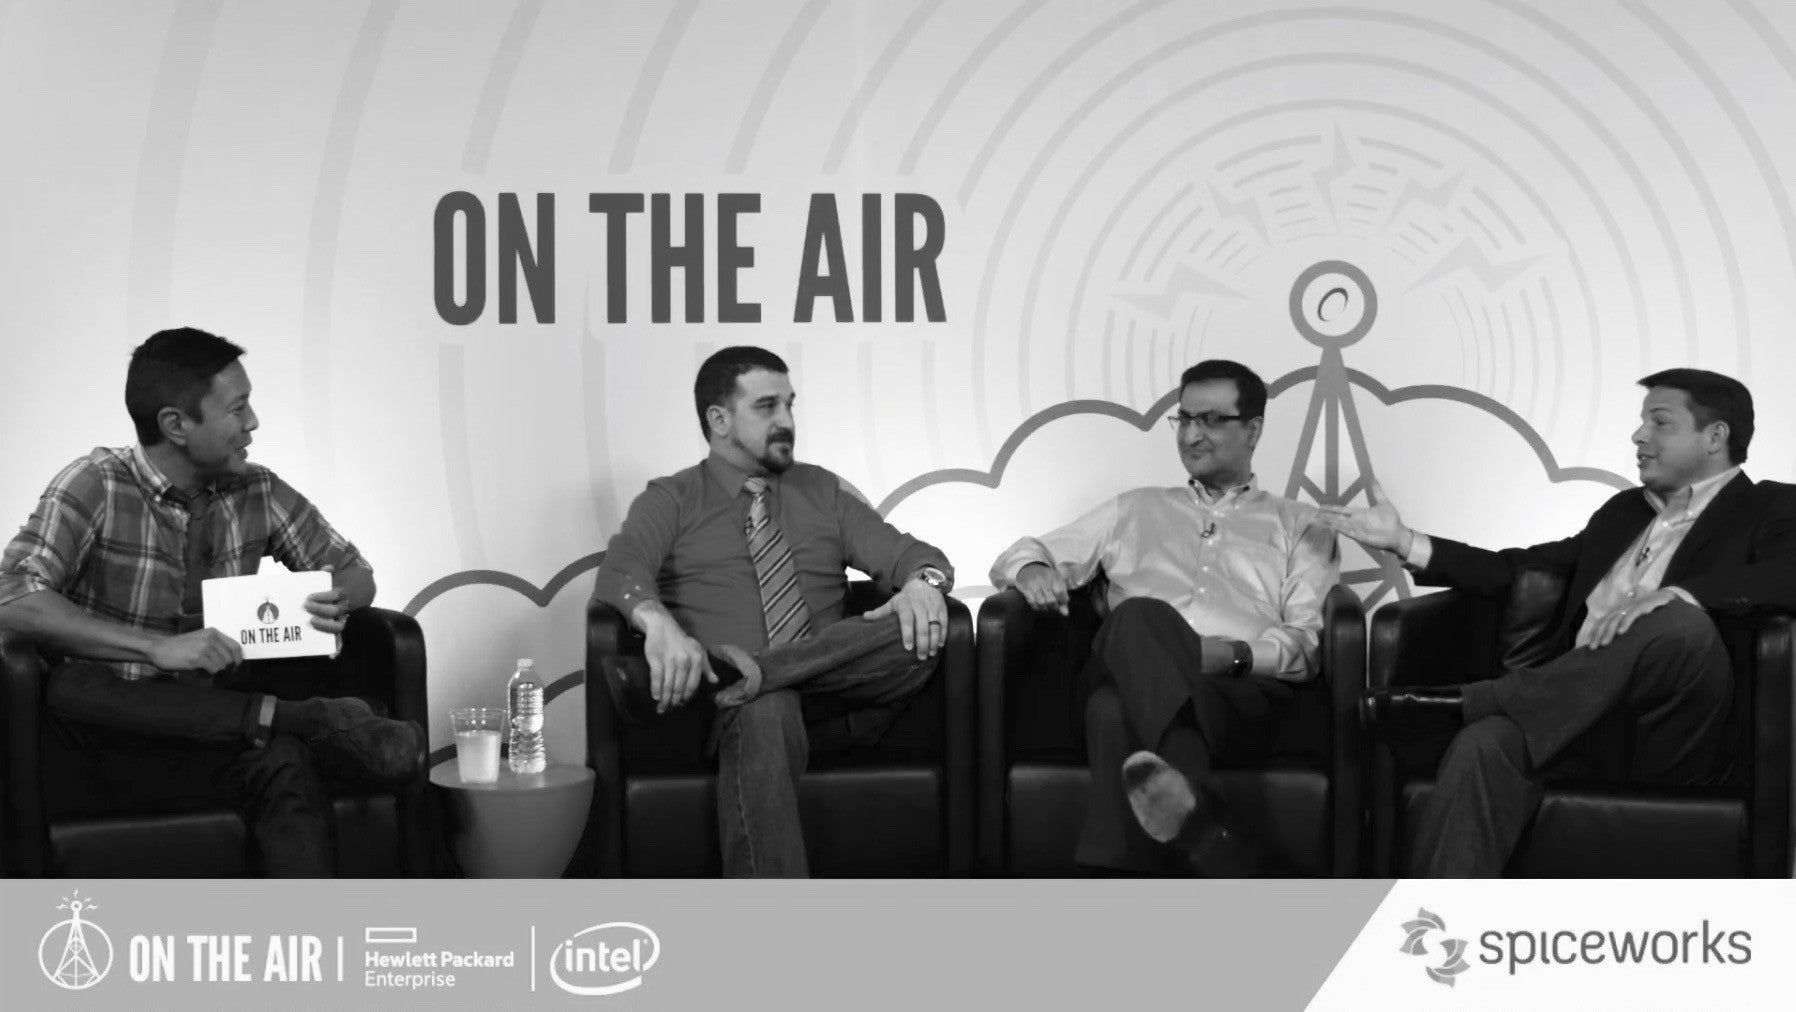 Spiceworks On the Air Live Series